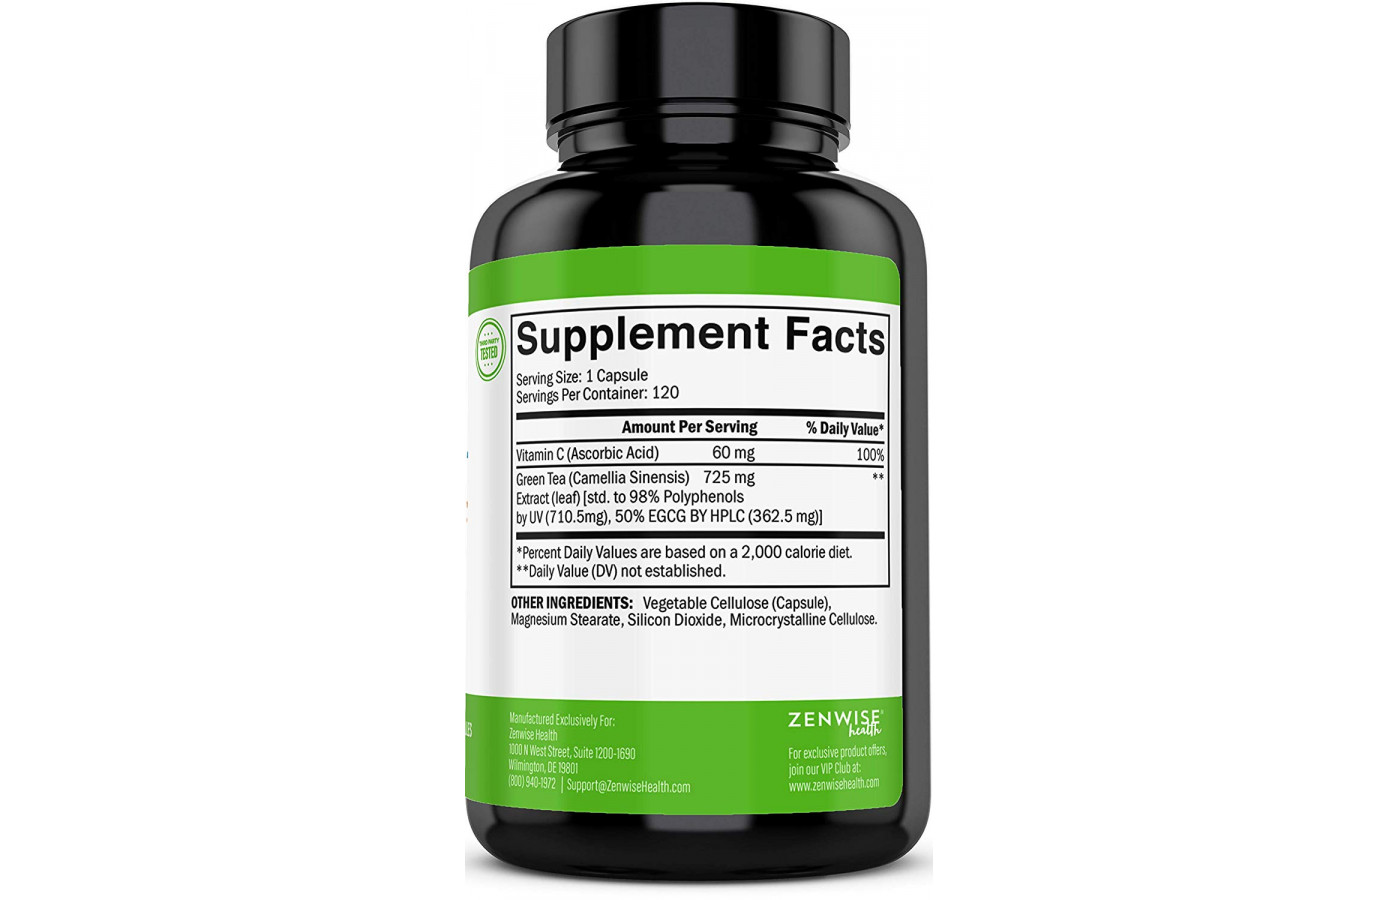 zenwise green tea extract supplement facts